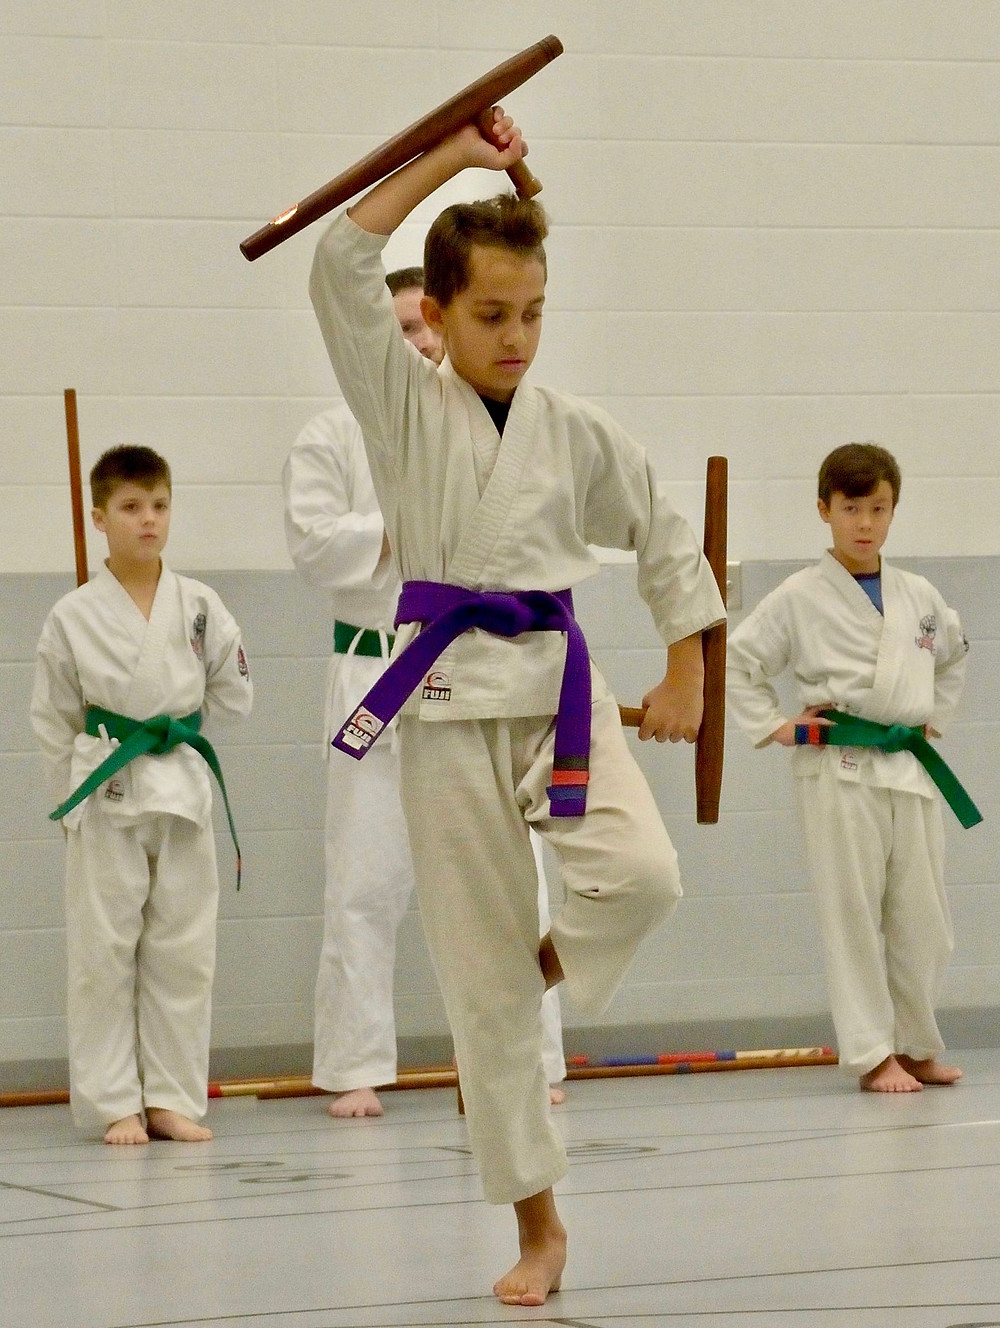 More Dec 30th grading photos on Facebook.